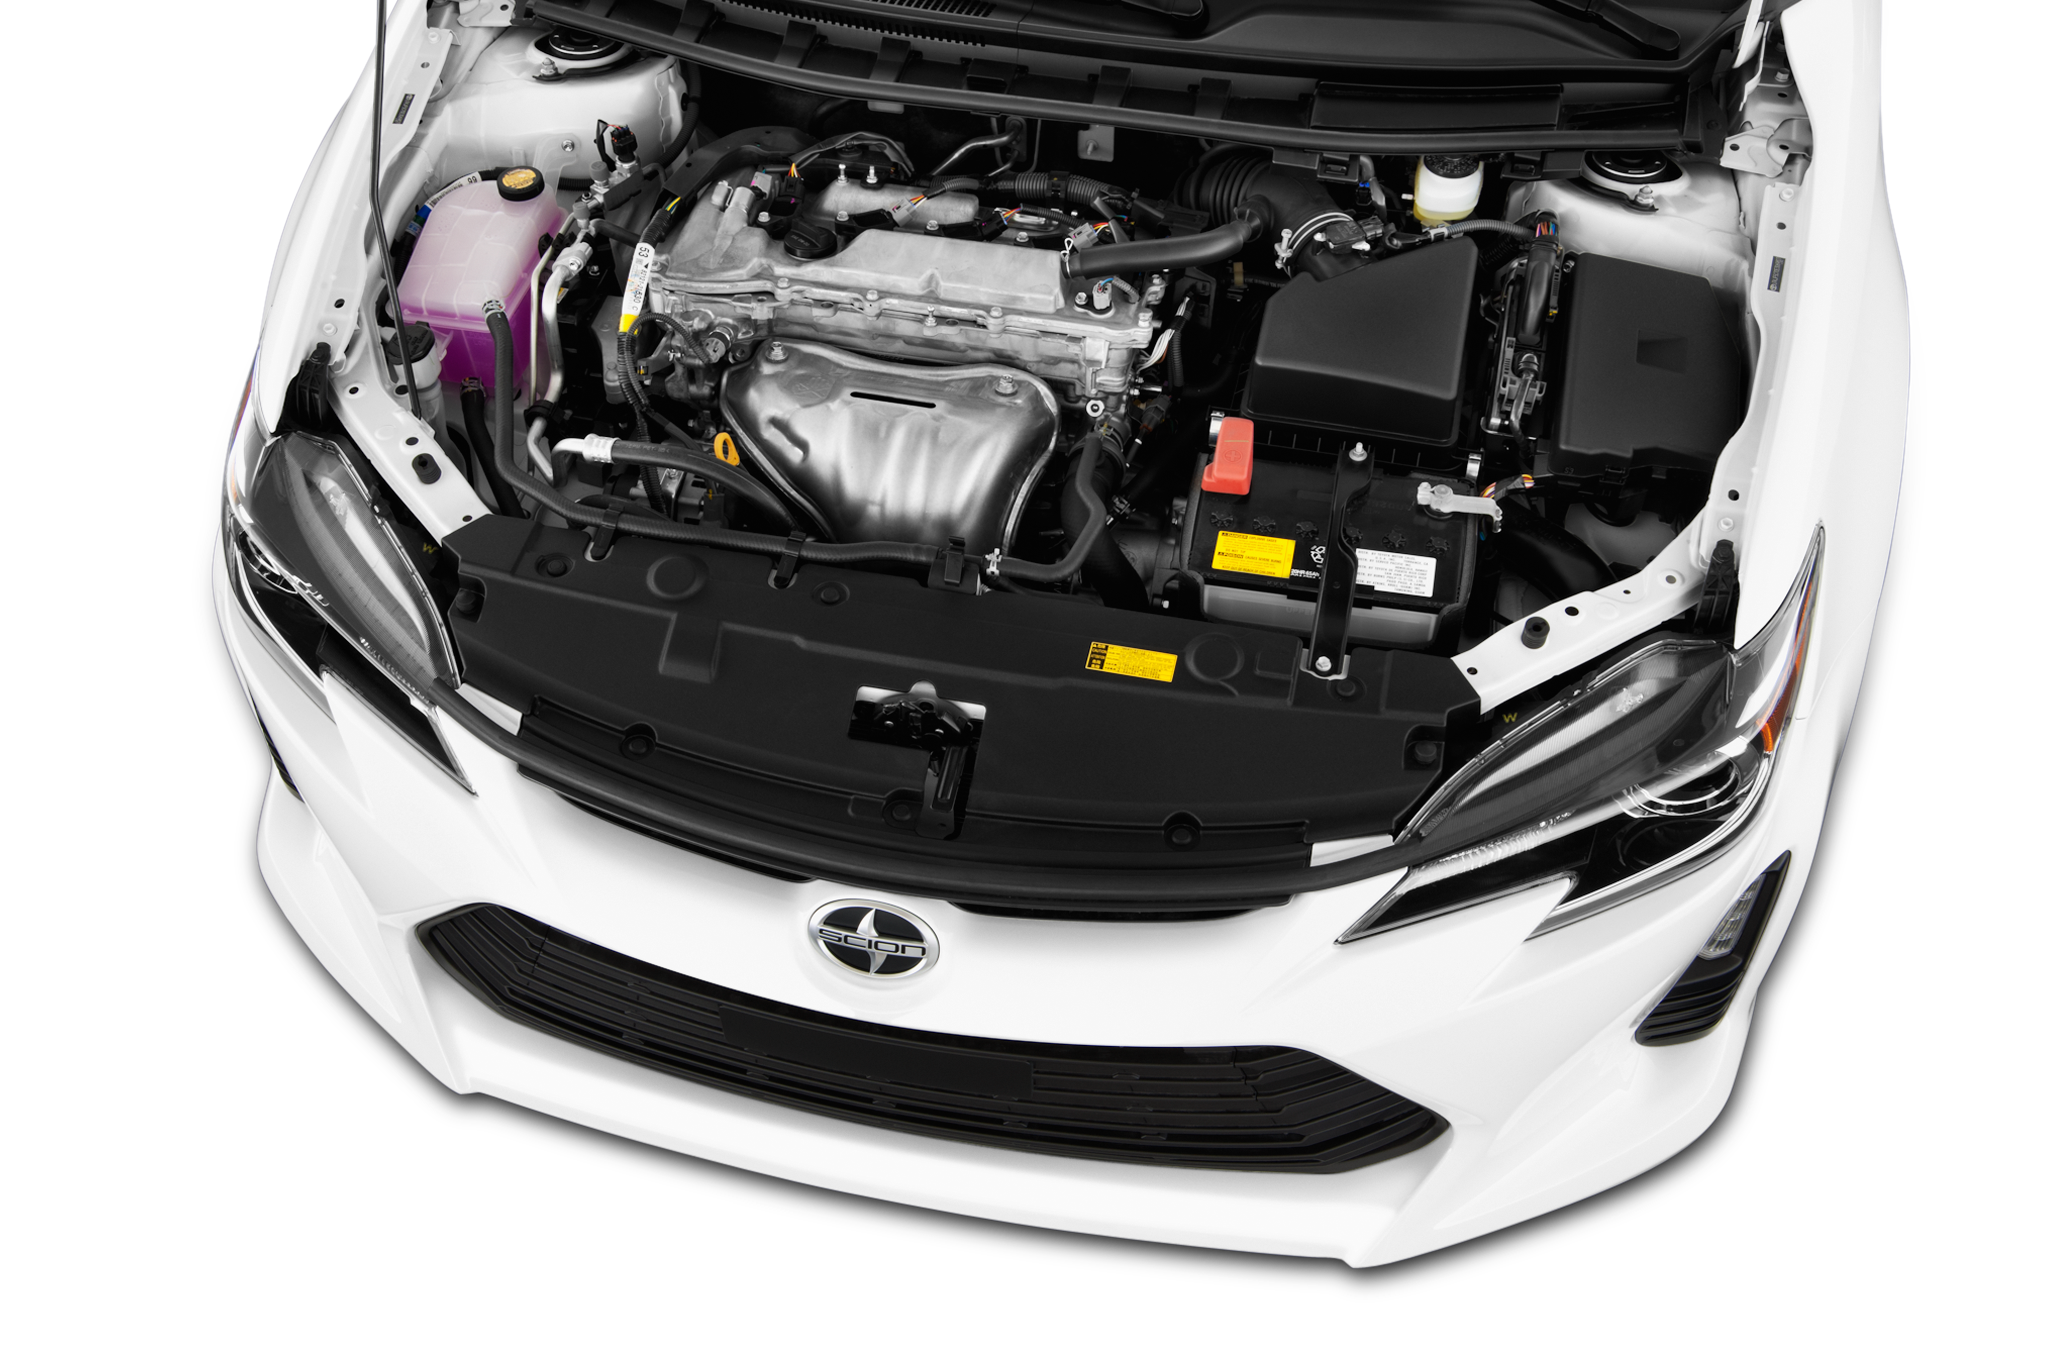 Scion Tc Engine 2019 2020 New Car Update Diagram 2015 Release Series 9 0 Announced